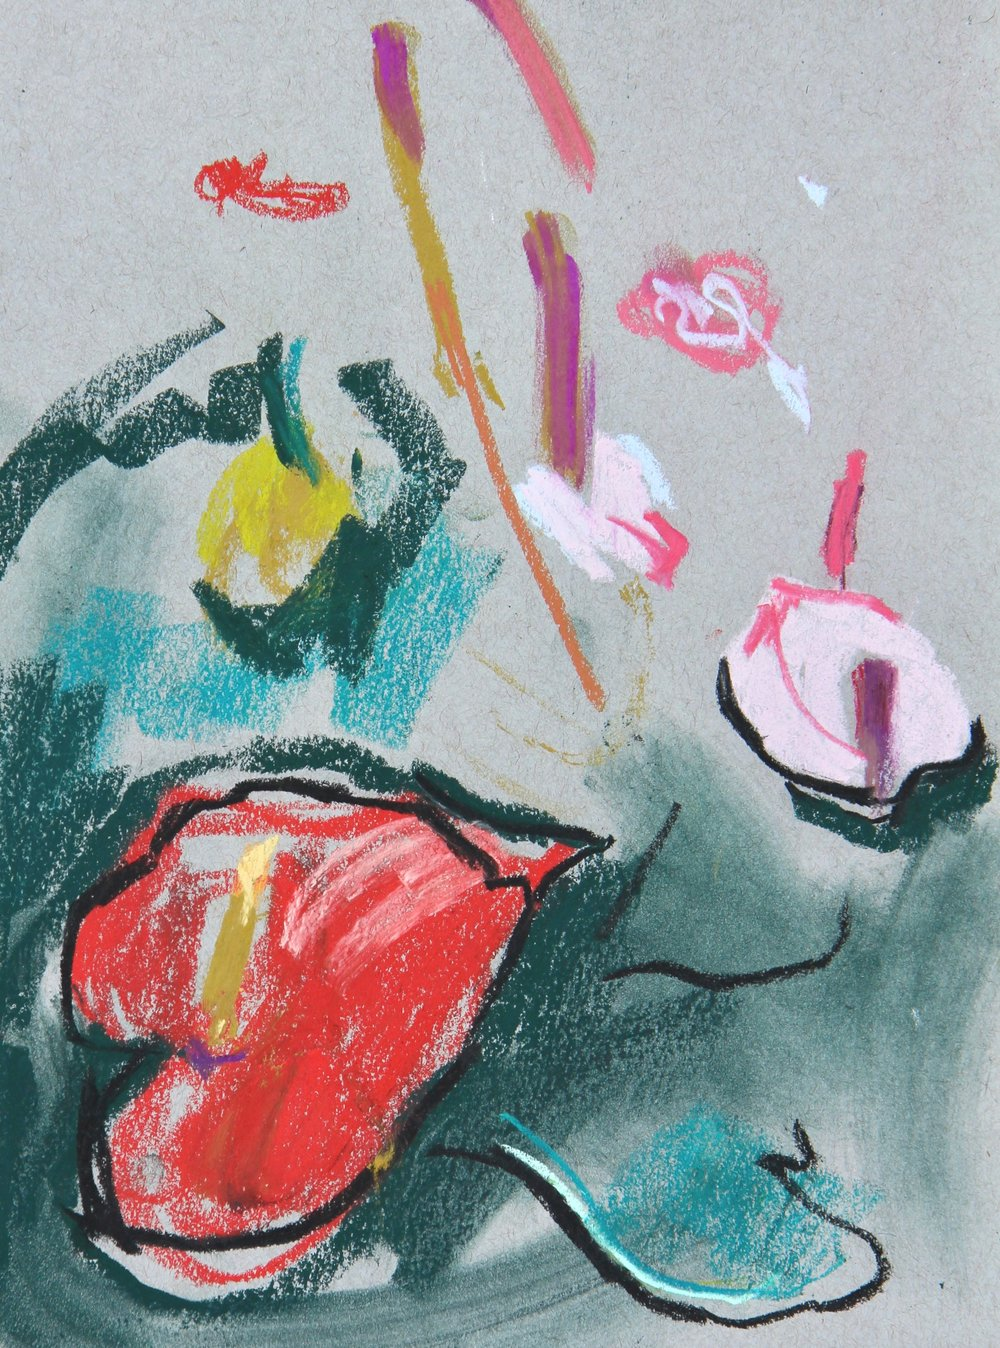 plant study - anthuriums 2 - 21 x 29cm, pastels on grey paper. Mounted on acid-free board £125